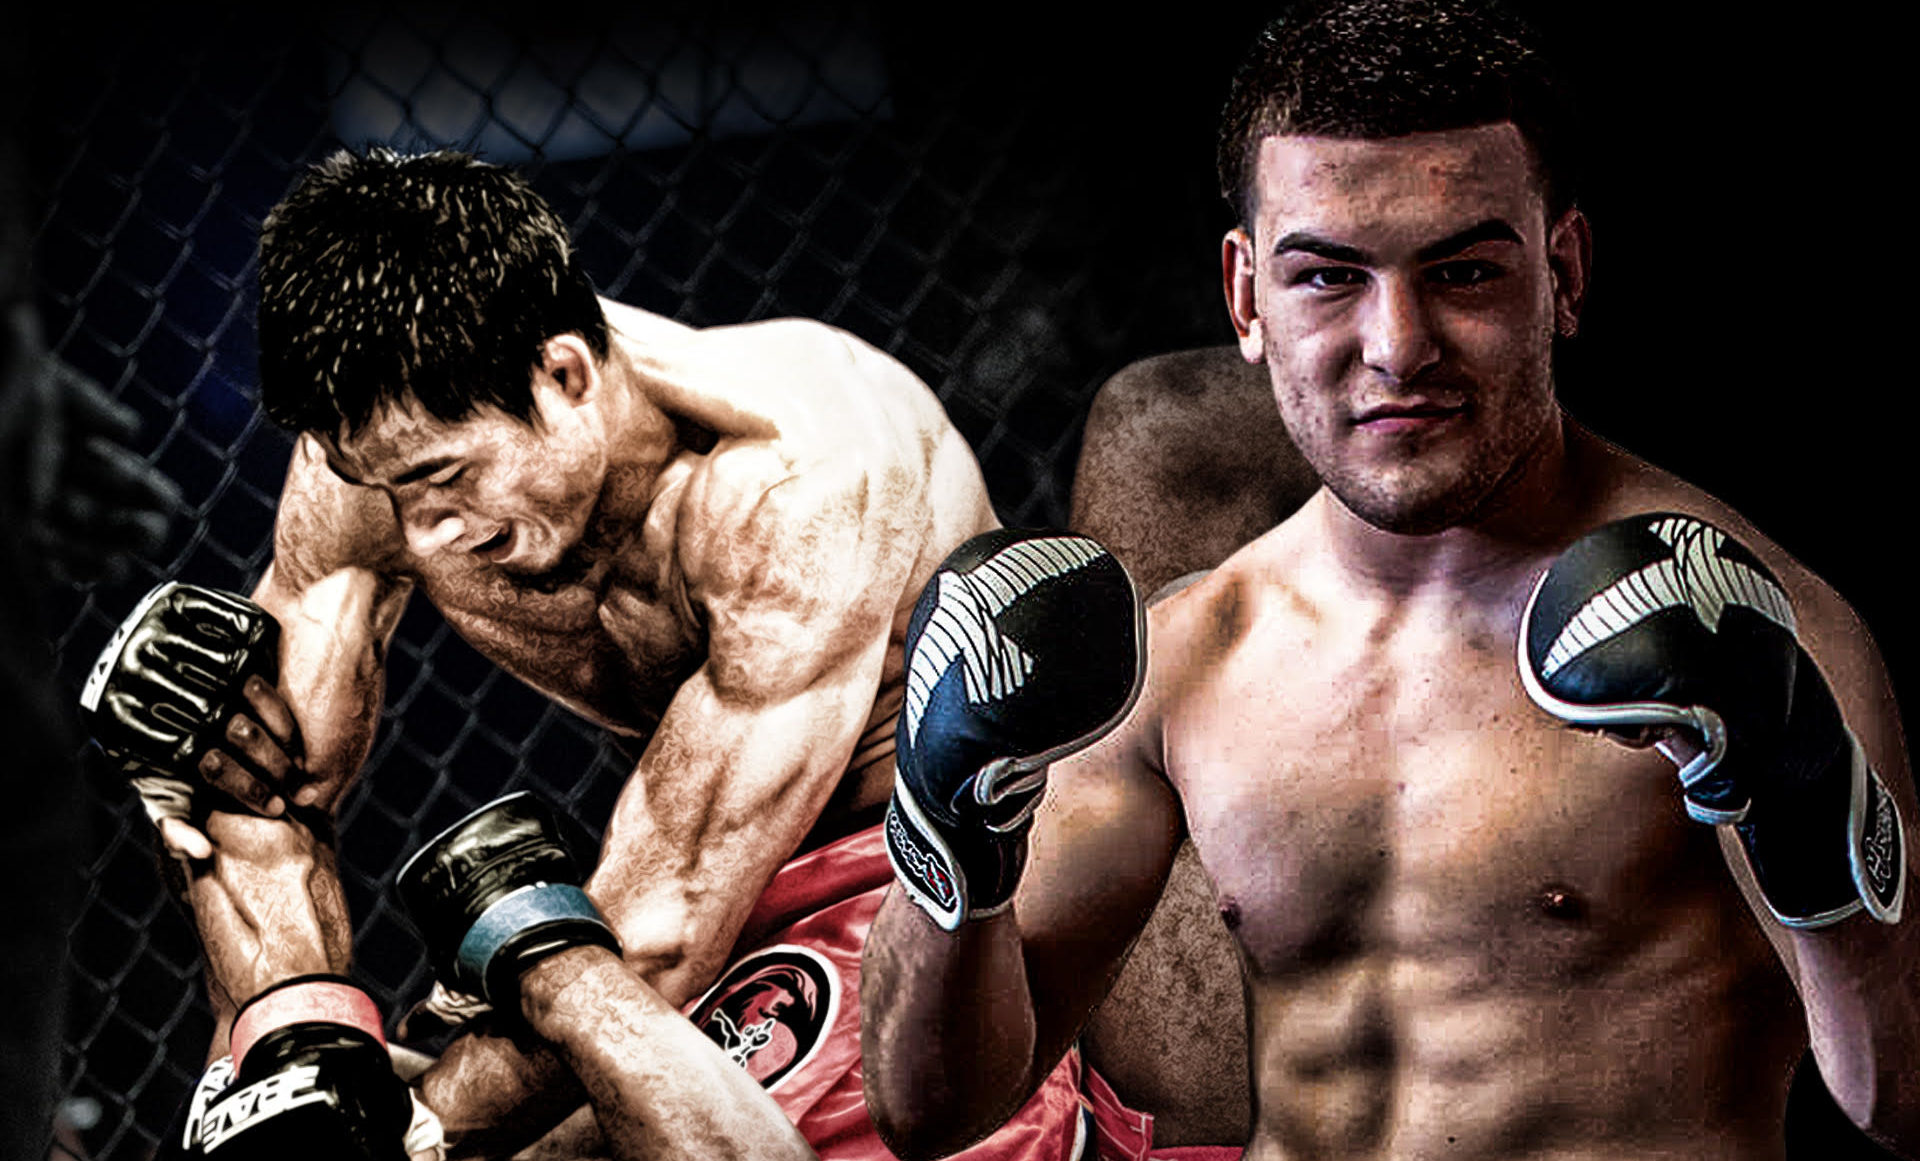 'Shorty' Torres breaks down Loman x Boudegzdame title fight at Brave 22 -